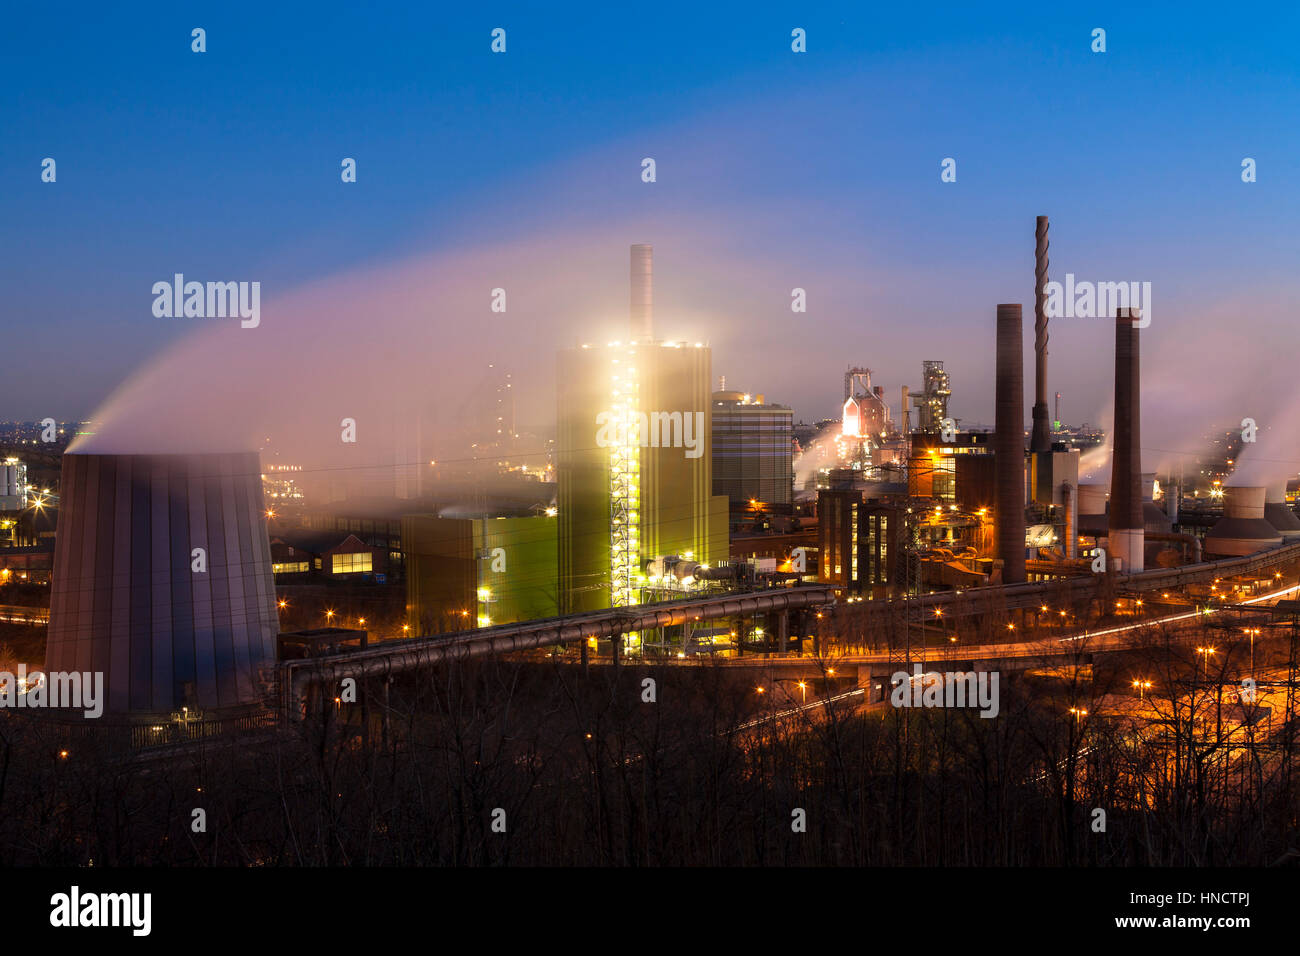 Germany, North Rhine-Westphalia, Ruhr area, Duisburg, ThyssenKrupp Steel plant in the district Bruckhausen, view - Stock Image